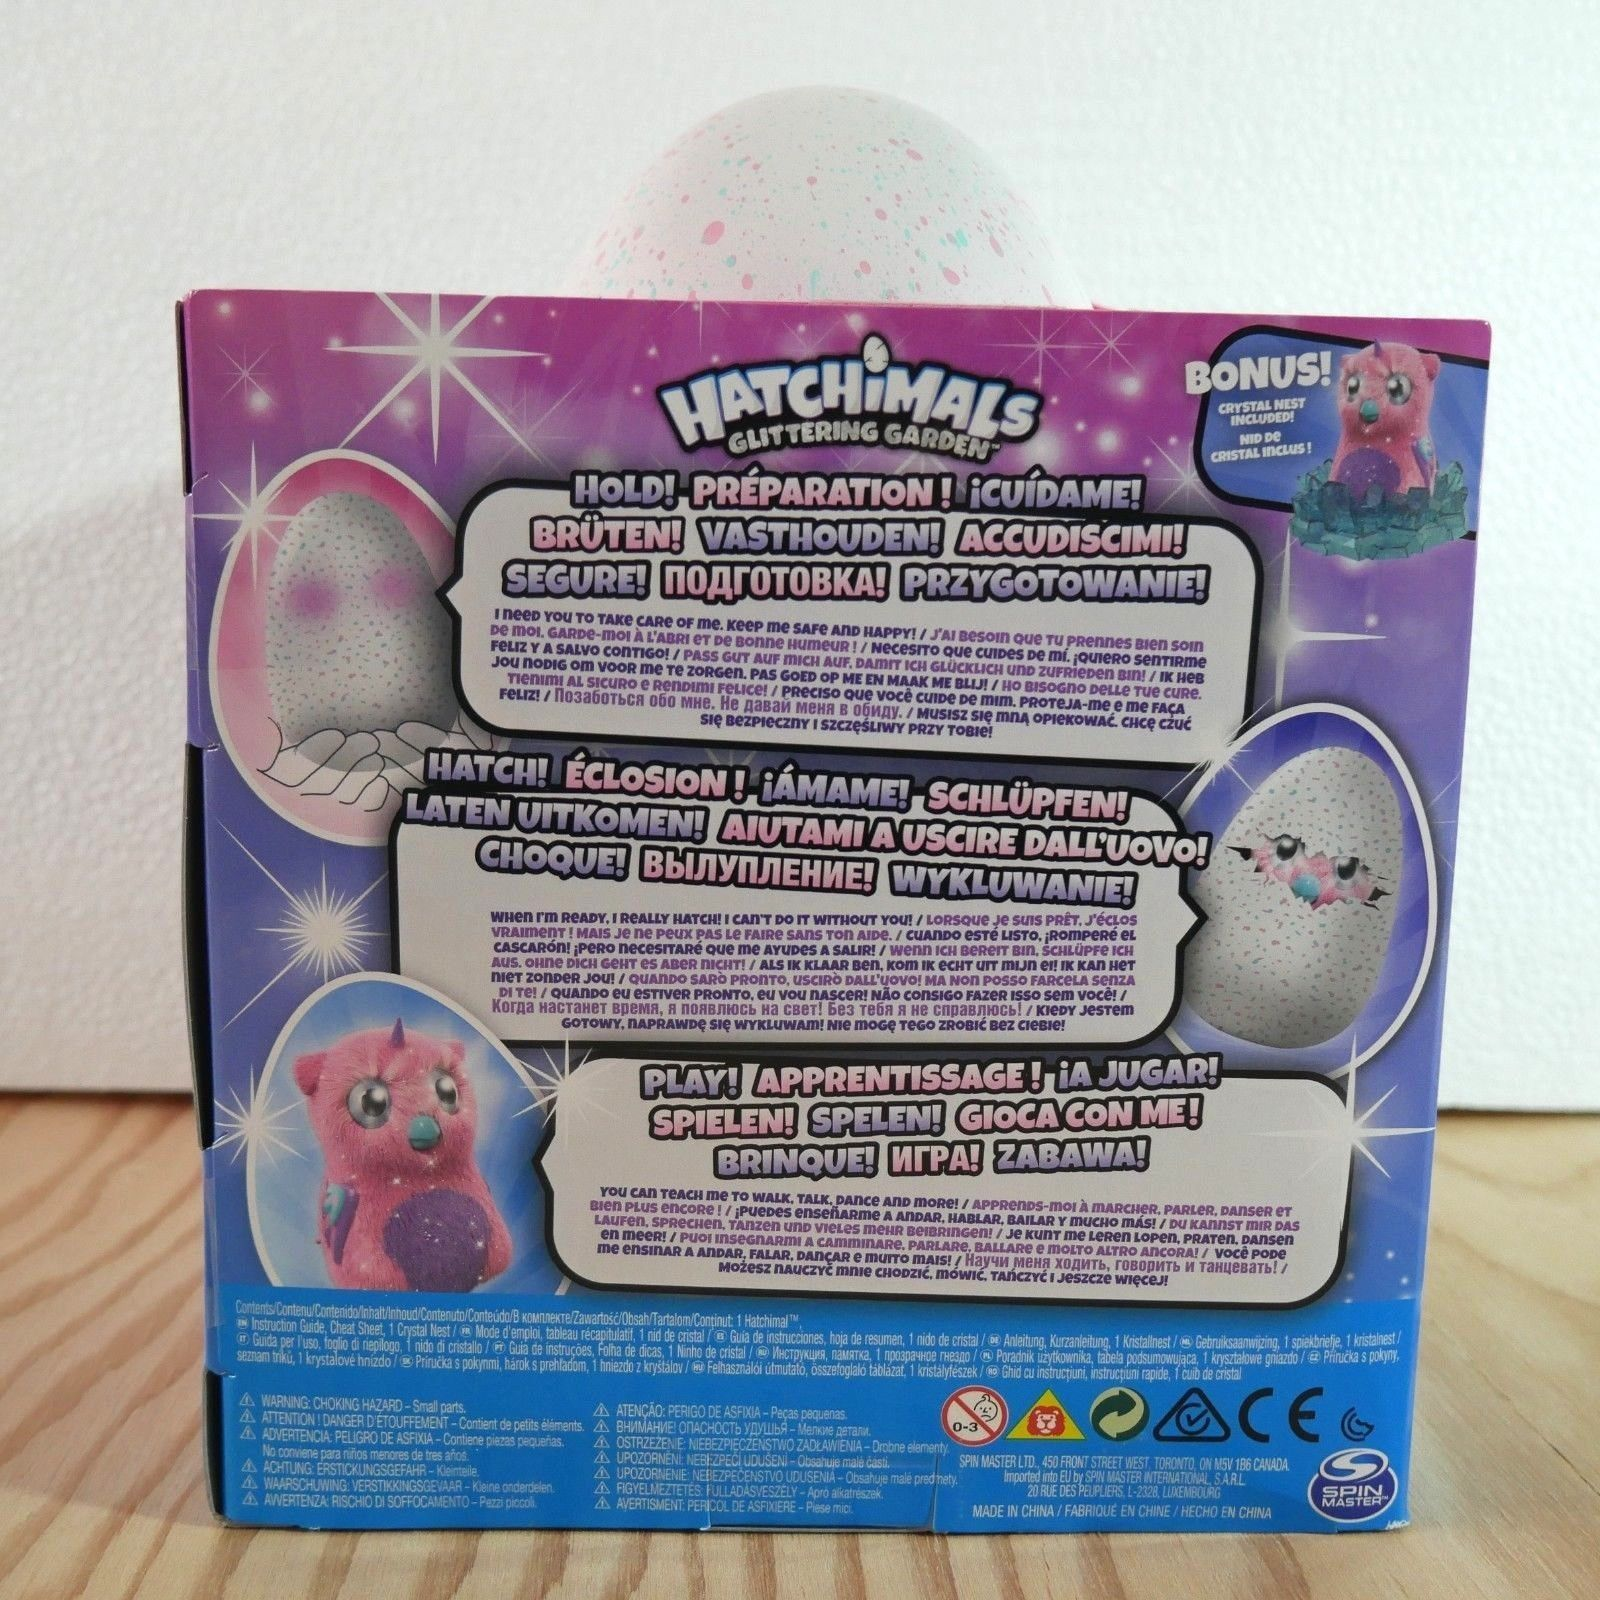 HATCHIMALS OWLICORNS GLITTERING GARDEN OWLICORN BIG EGG BONUS CRISTAL NEST